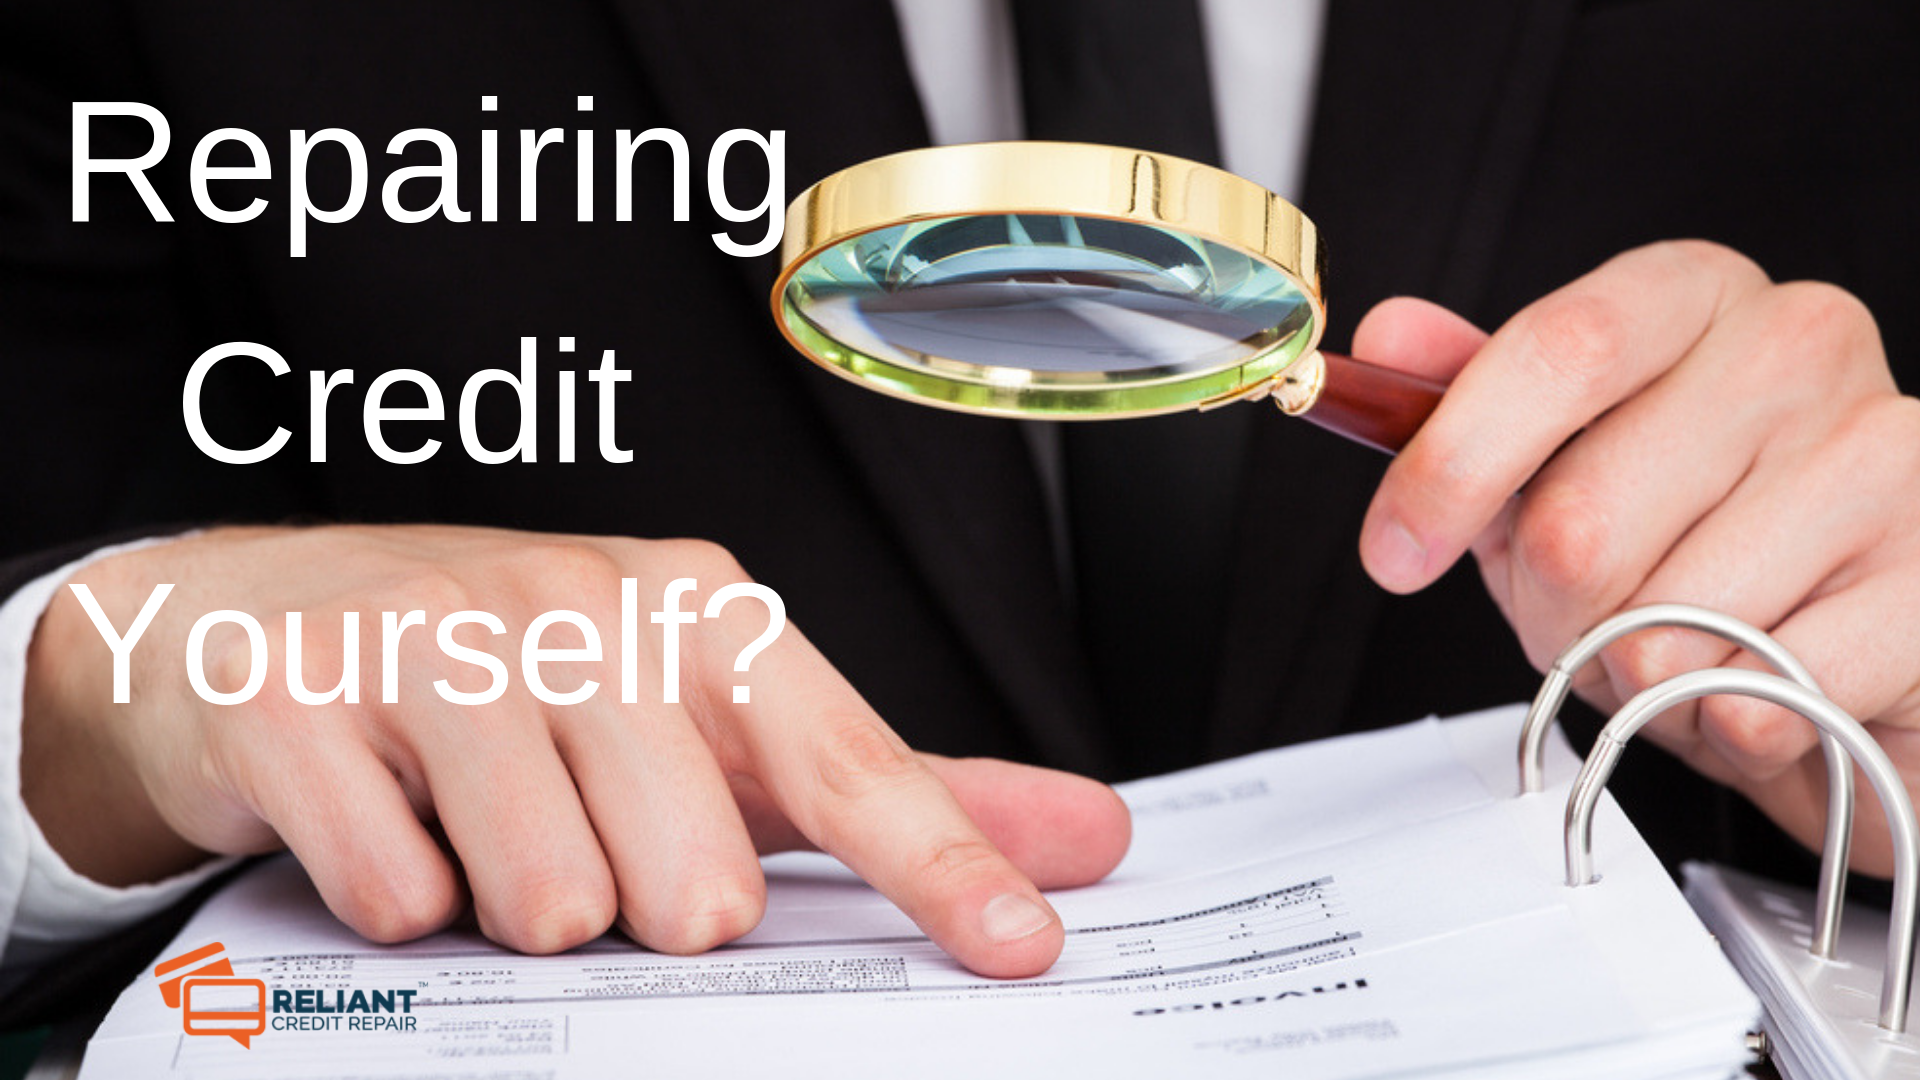 Repairing Credit Yourself